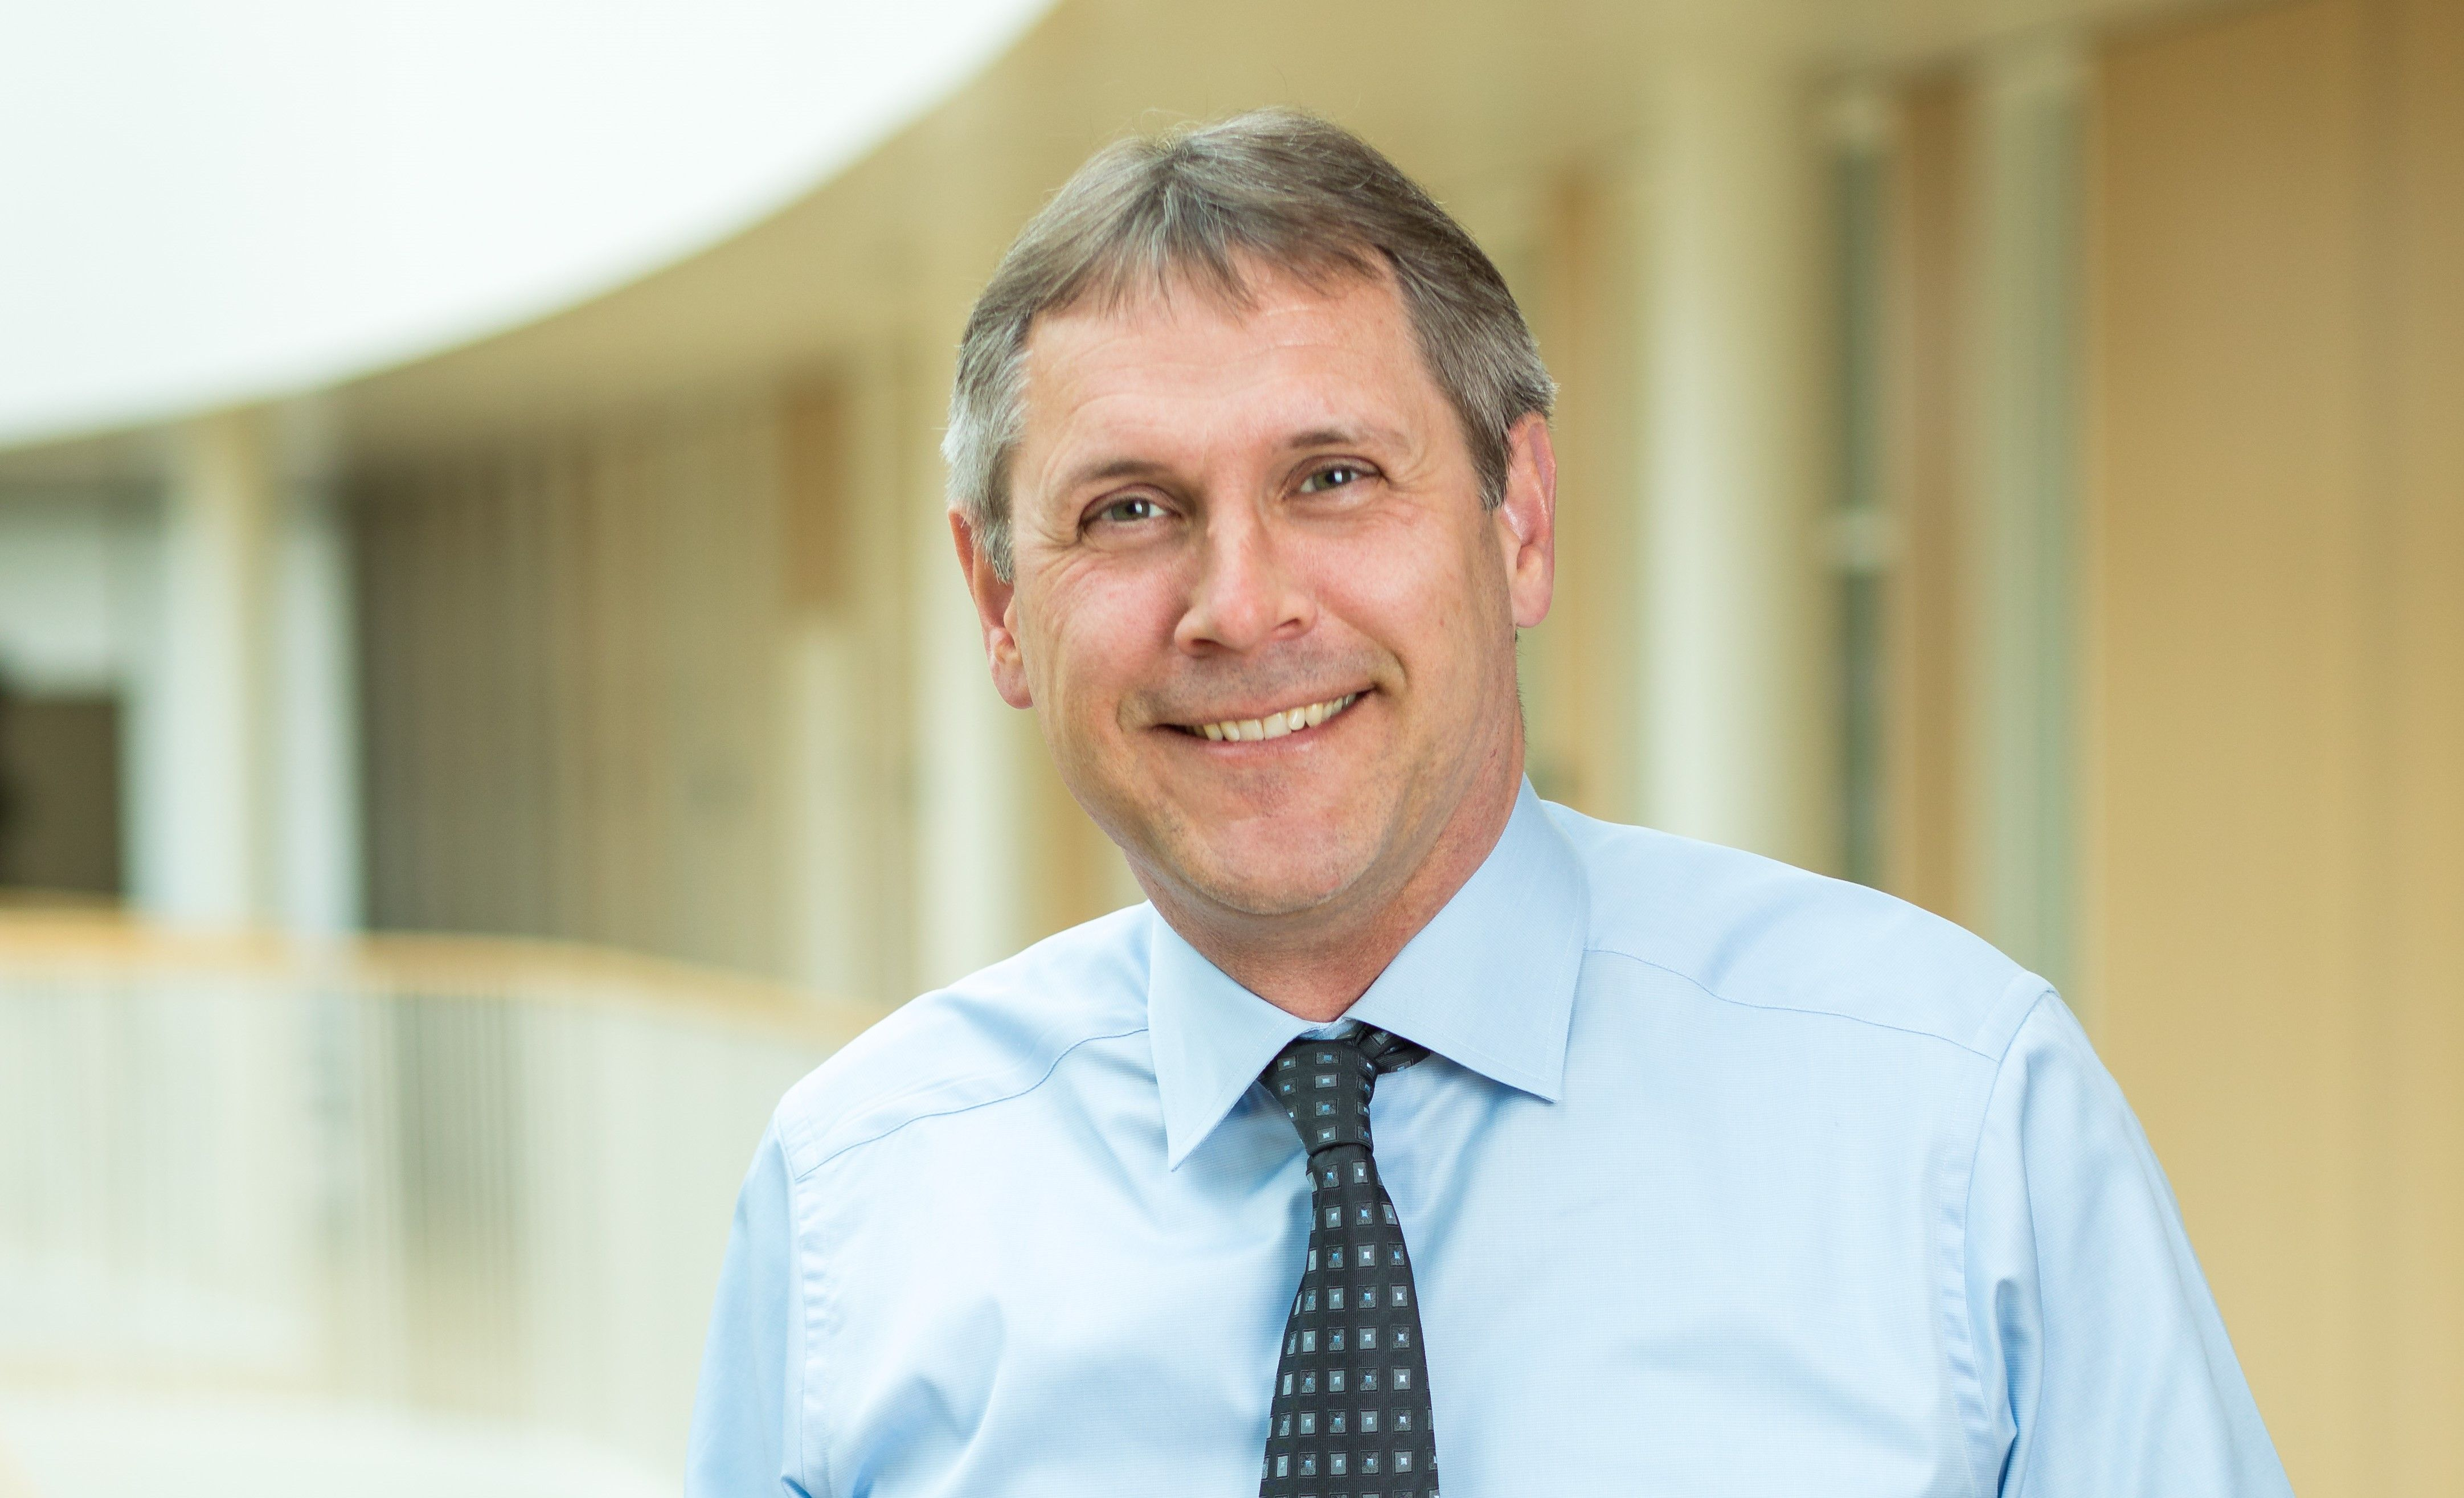 Peter Kirkegaard is new Chief Human Resources Officer with Haldor Topsoe from January 1, 2021 (2)